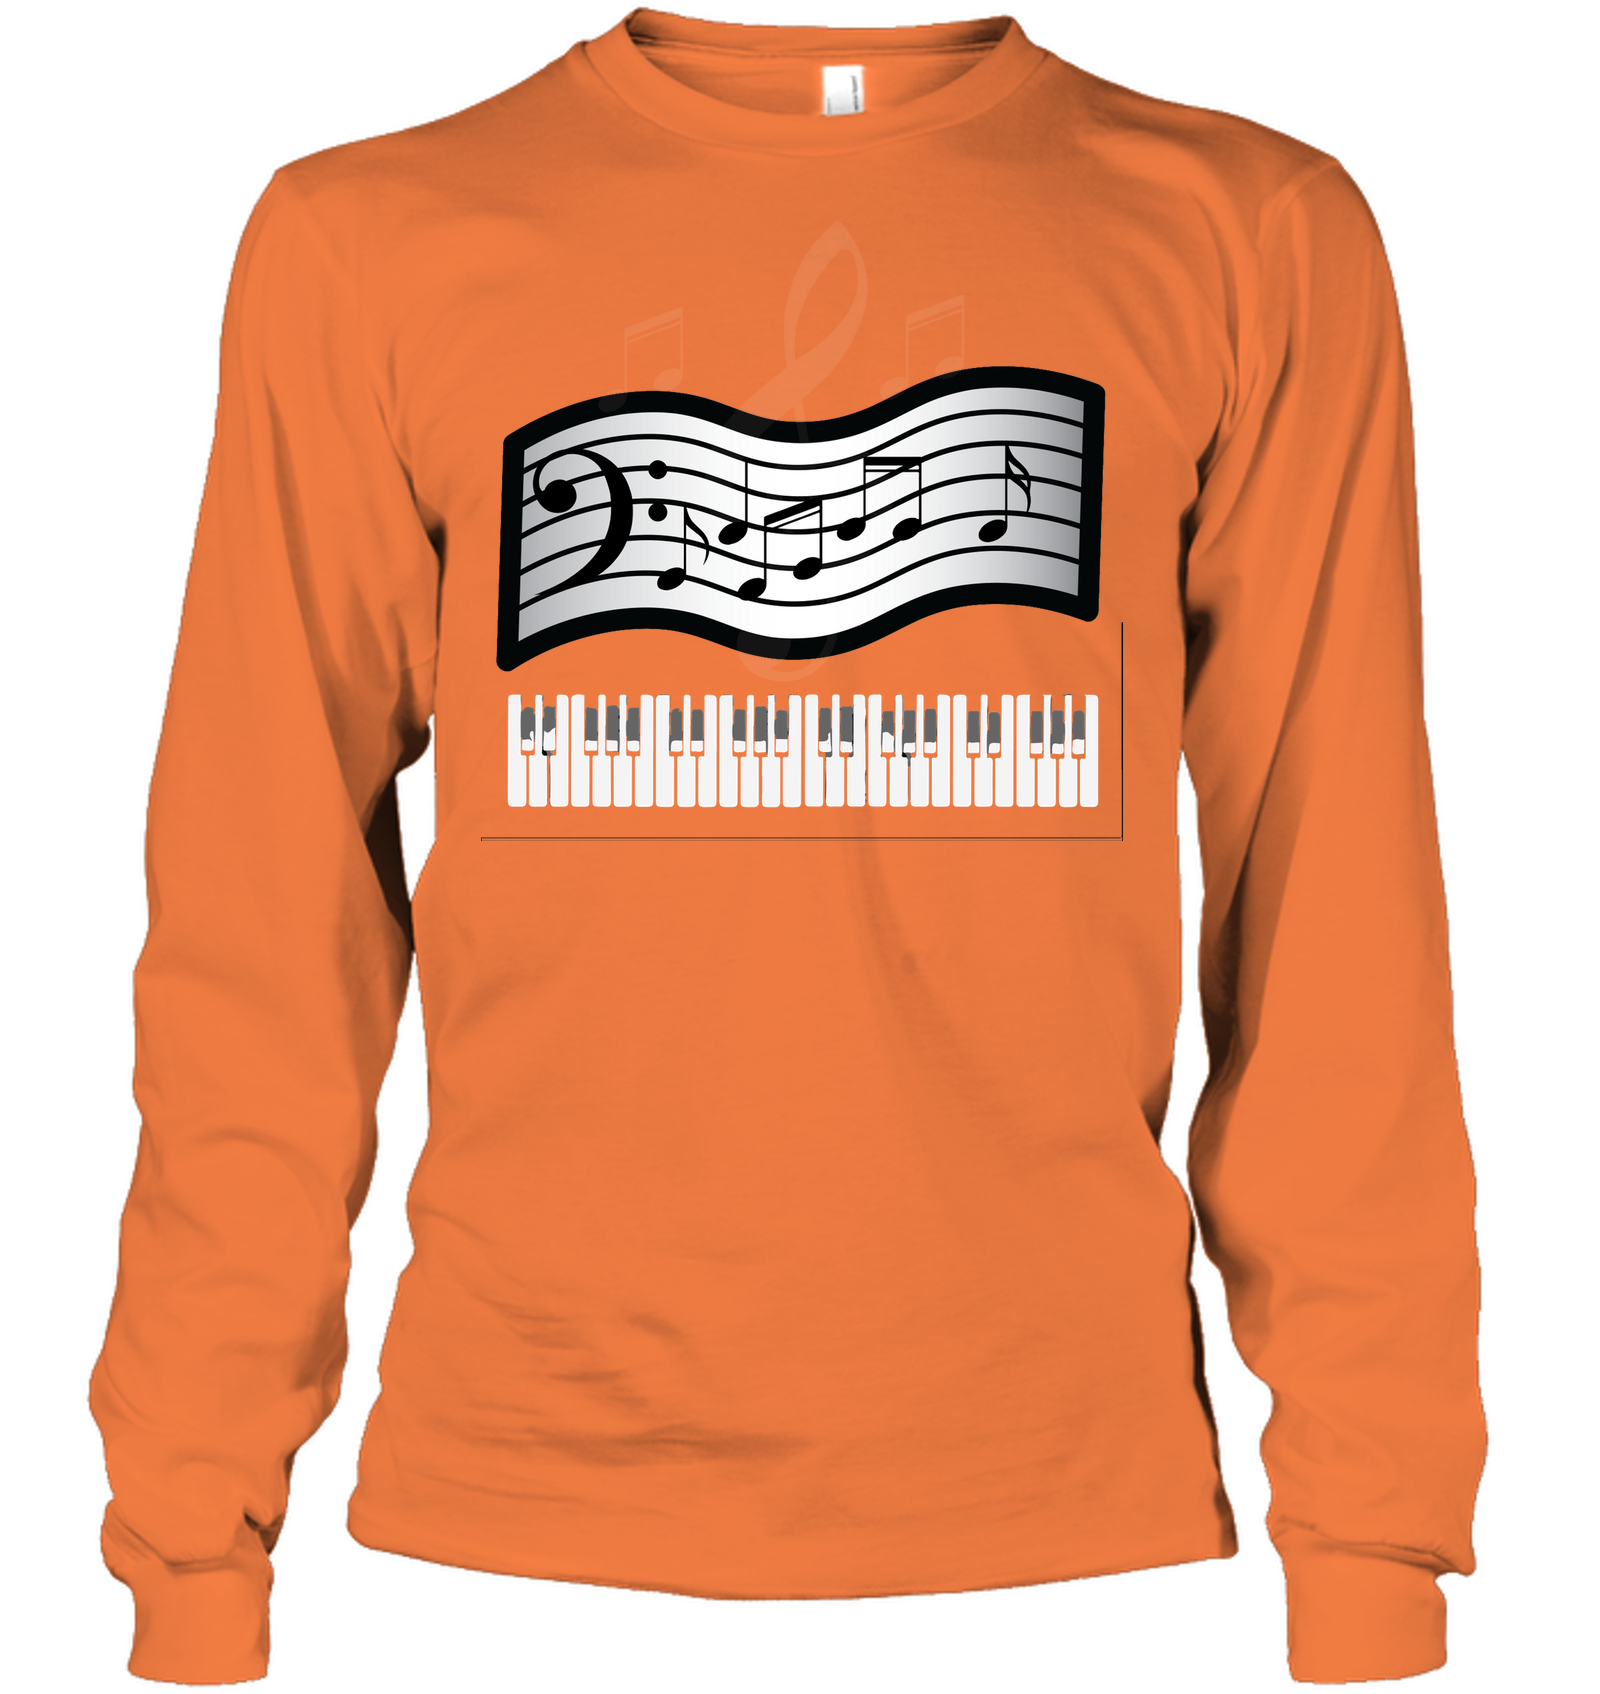 Keyboard and Musical Notes - Gildan Adult Classic Long Sleeve T-Shirt